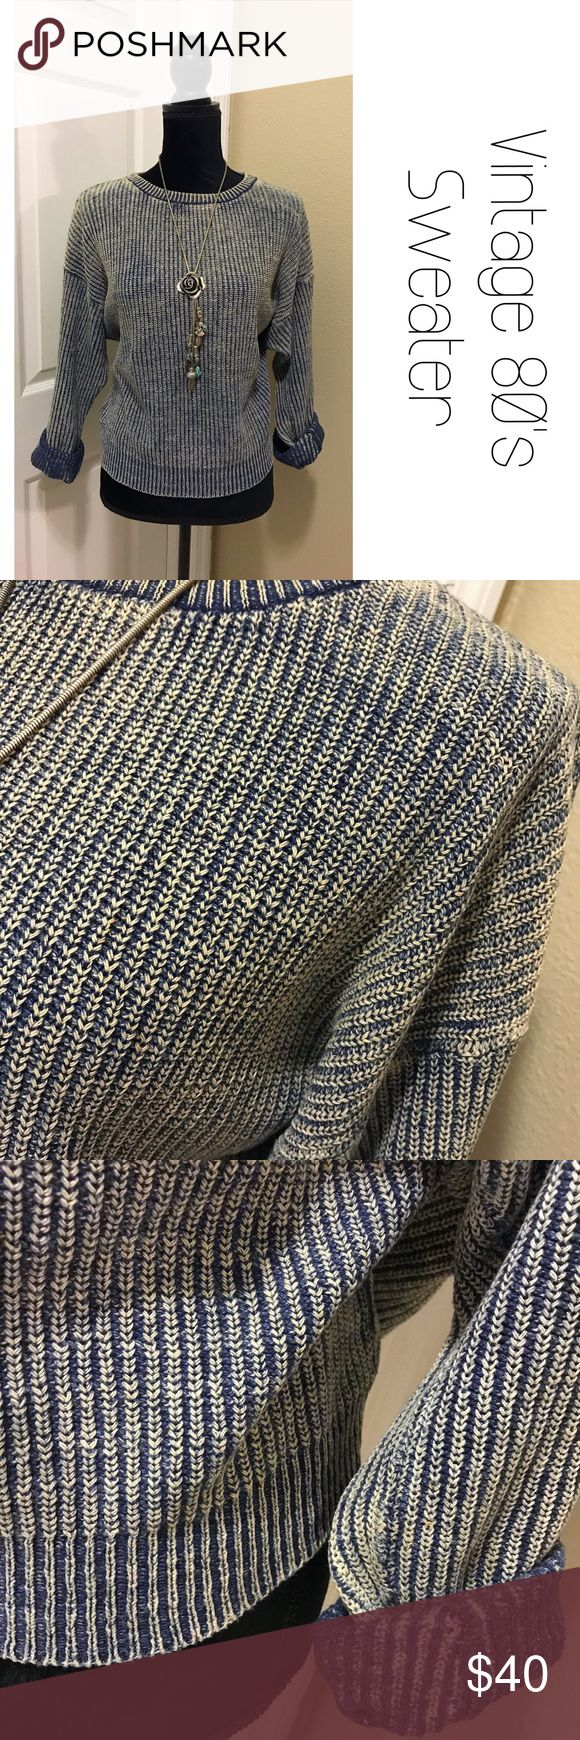 Vintage 80's Burnout Ribbed Cotton Sweater L This sweater makes me want to listen to Debbie Gibson and hang out at the roller rink.  Size Large, ribbed with a burnout look.  Excellent condition considering that age, no flaws.  Offers welcome! B8 Vintage Sweaters